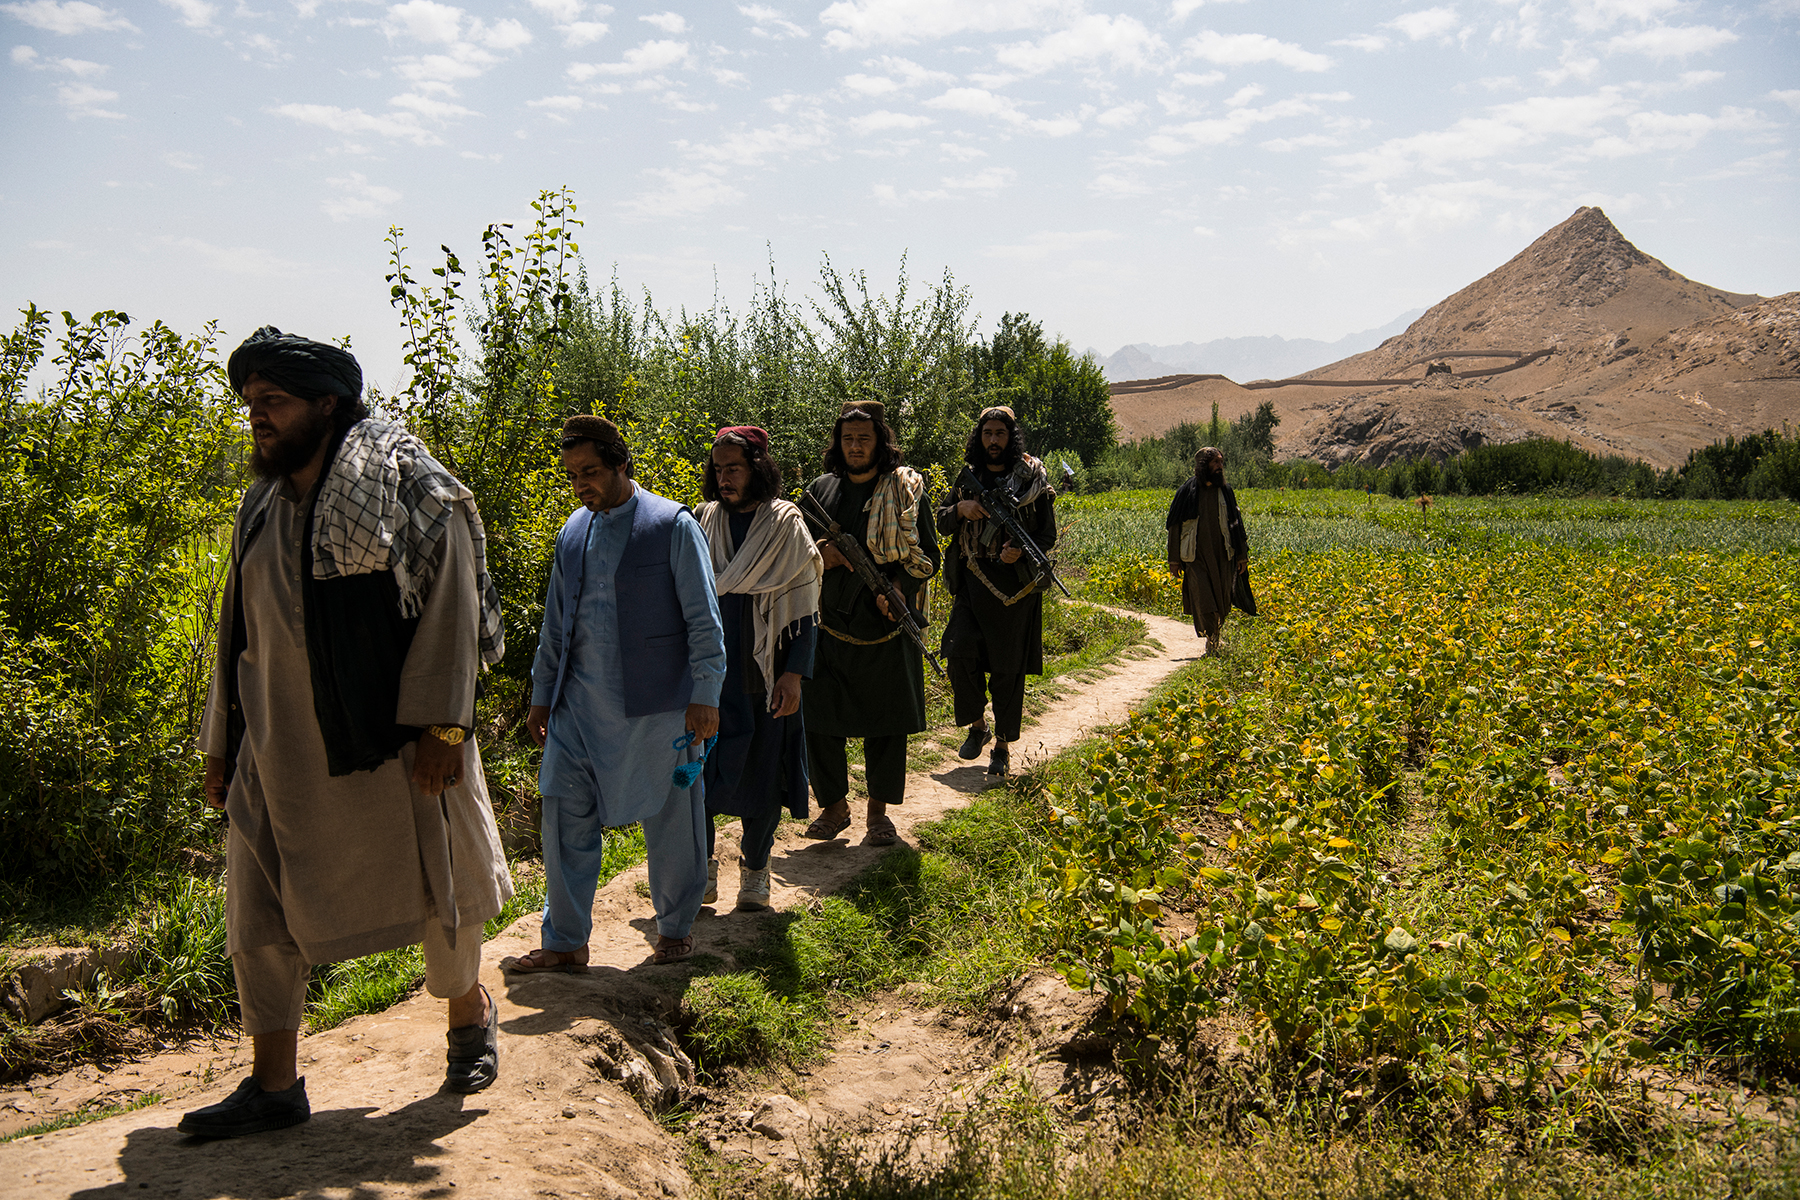 Local Taliban commander Tawakul leads fighters and bodyguards after an interview with American journalist Jason Motlagh in an apple orchard in the Taliban-controlled village of Qala Amir, Tangi Valley, Wardak province.The Tangi Valley and it's numerous villages, including Qala Amir, pictured, in Sayedabad district, Wardak province, has been under the control of the Taliban for several years following the withdrawal of American forces who occupied a small base just outside Qala Amir and is, since American forces curtailed their use of air power and special forces raids as agreed in the February 29 Doha Agreement with the Taliban, as much at peace as it has been probably since the insurgency began in the mid-2000s. The Tangi Valley saw extremely heavy fighting in the years that control was contested, but, once the U.S. withdrew from Tangi in 2014 and Afghan government forces were unable to hold it the only way it could be threatened was through night raids and air strikes, which occurred especially regularly in 2018 and 2019 as the Americans attempted to pressure the Taliban at the negotiating table. Wardak province, which neighbours Kabul to the southwest, has been a particularly violent province since then. Now, the majority of the province is under the control of the Taliban, with the government holding on to the capital, Maidan Shahr, some district centres and nominally, Highway 1 which passes lengthways through the province between Kabul and Ghazni province.